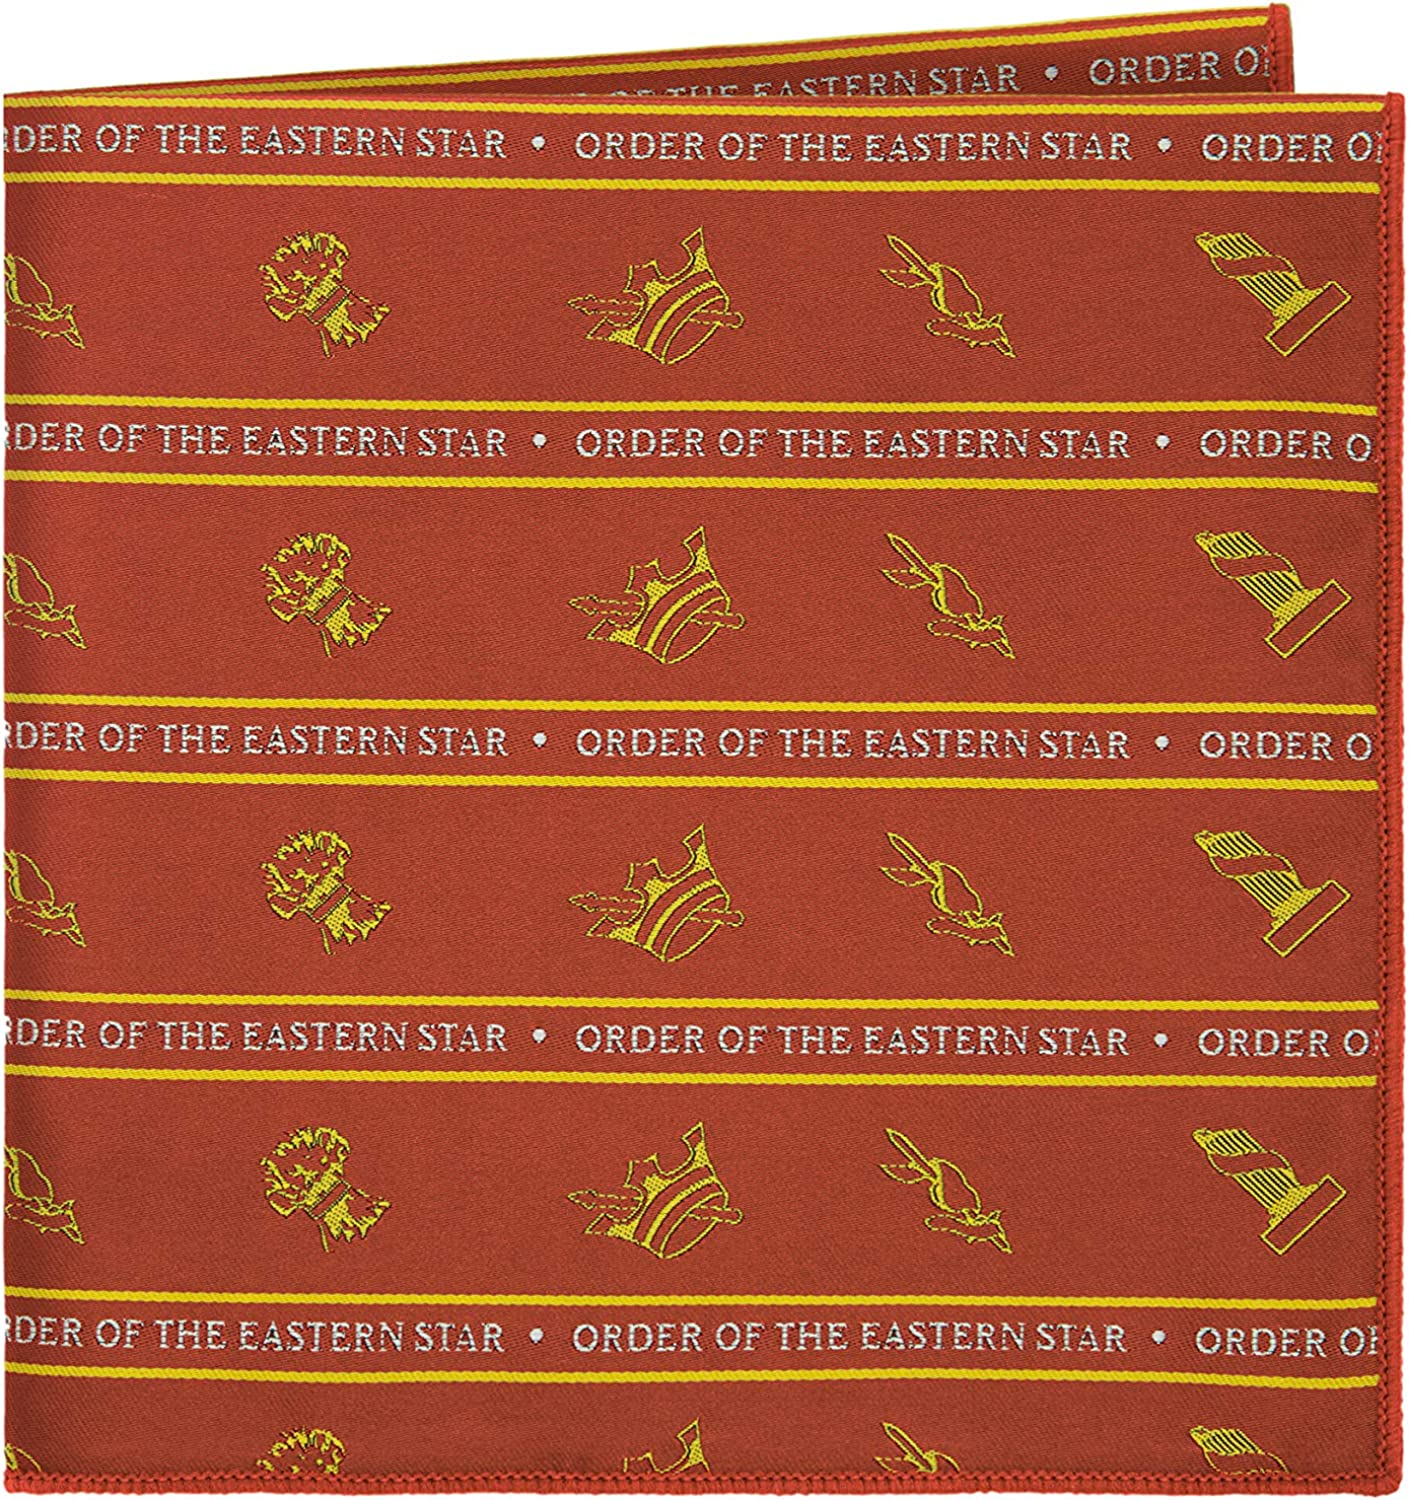 Order of the Eastern Star Pocket Square by Masonic Revival (Red)